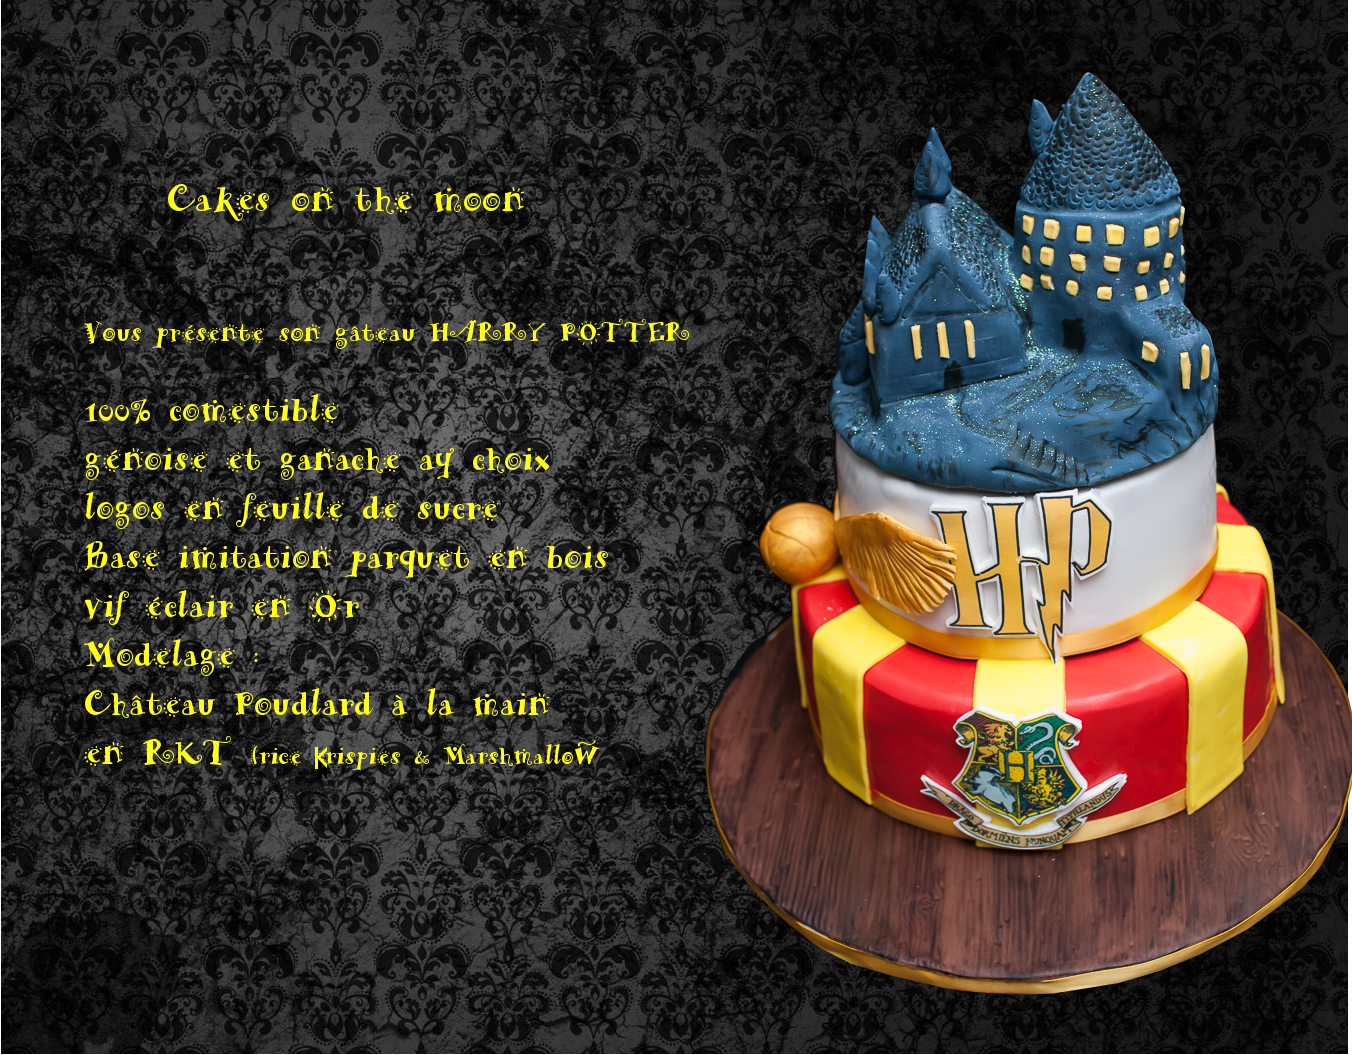 Notre Gateau Harry Potter Cakes On The Moon Cake Designer Lille Nord